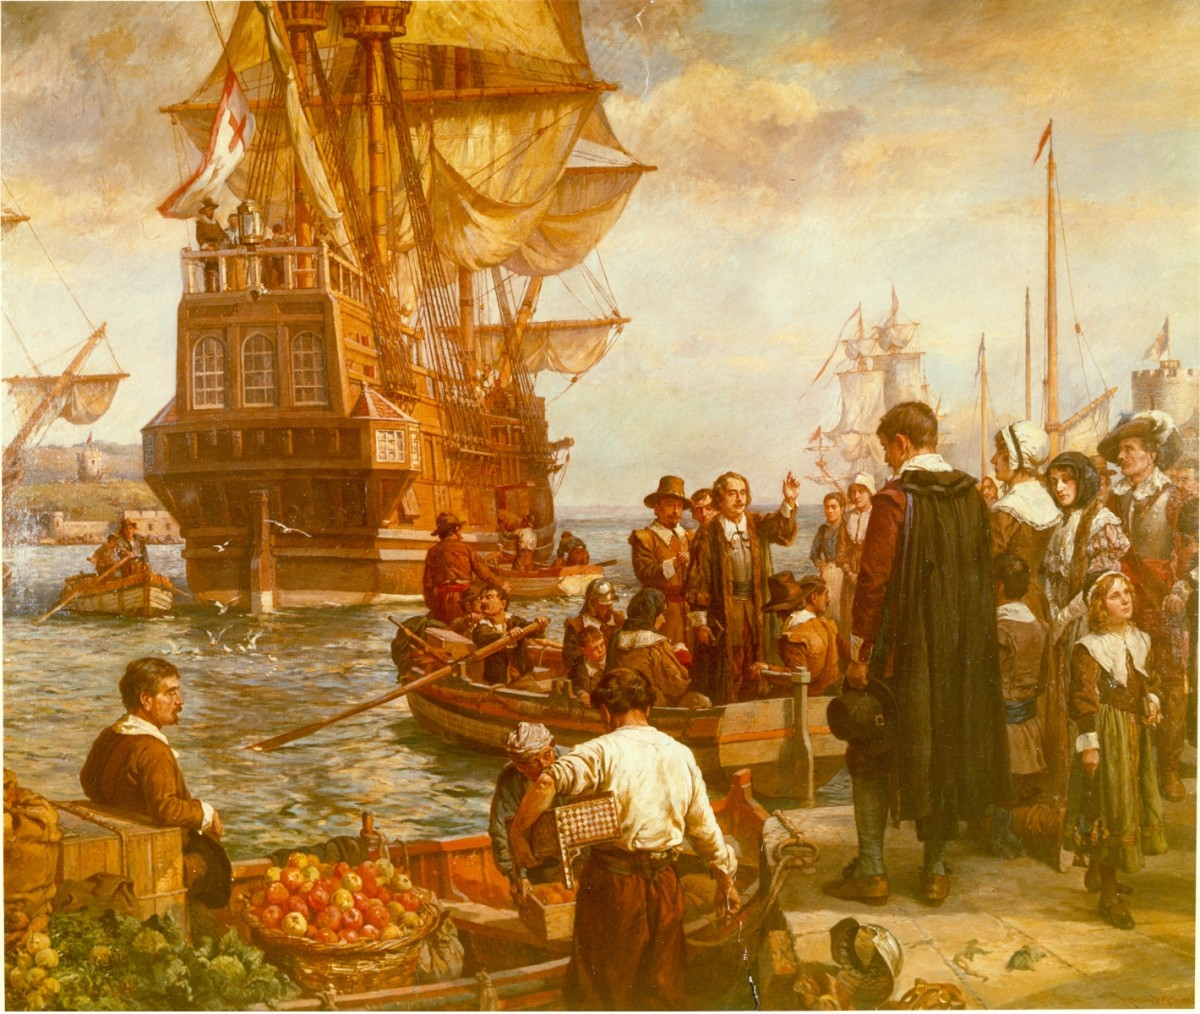 THE DEPARTURE OF THE PILGRIMS FROM EUROPE